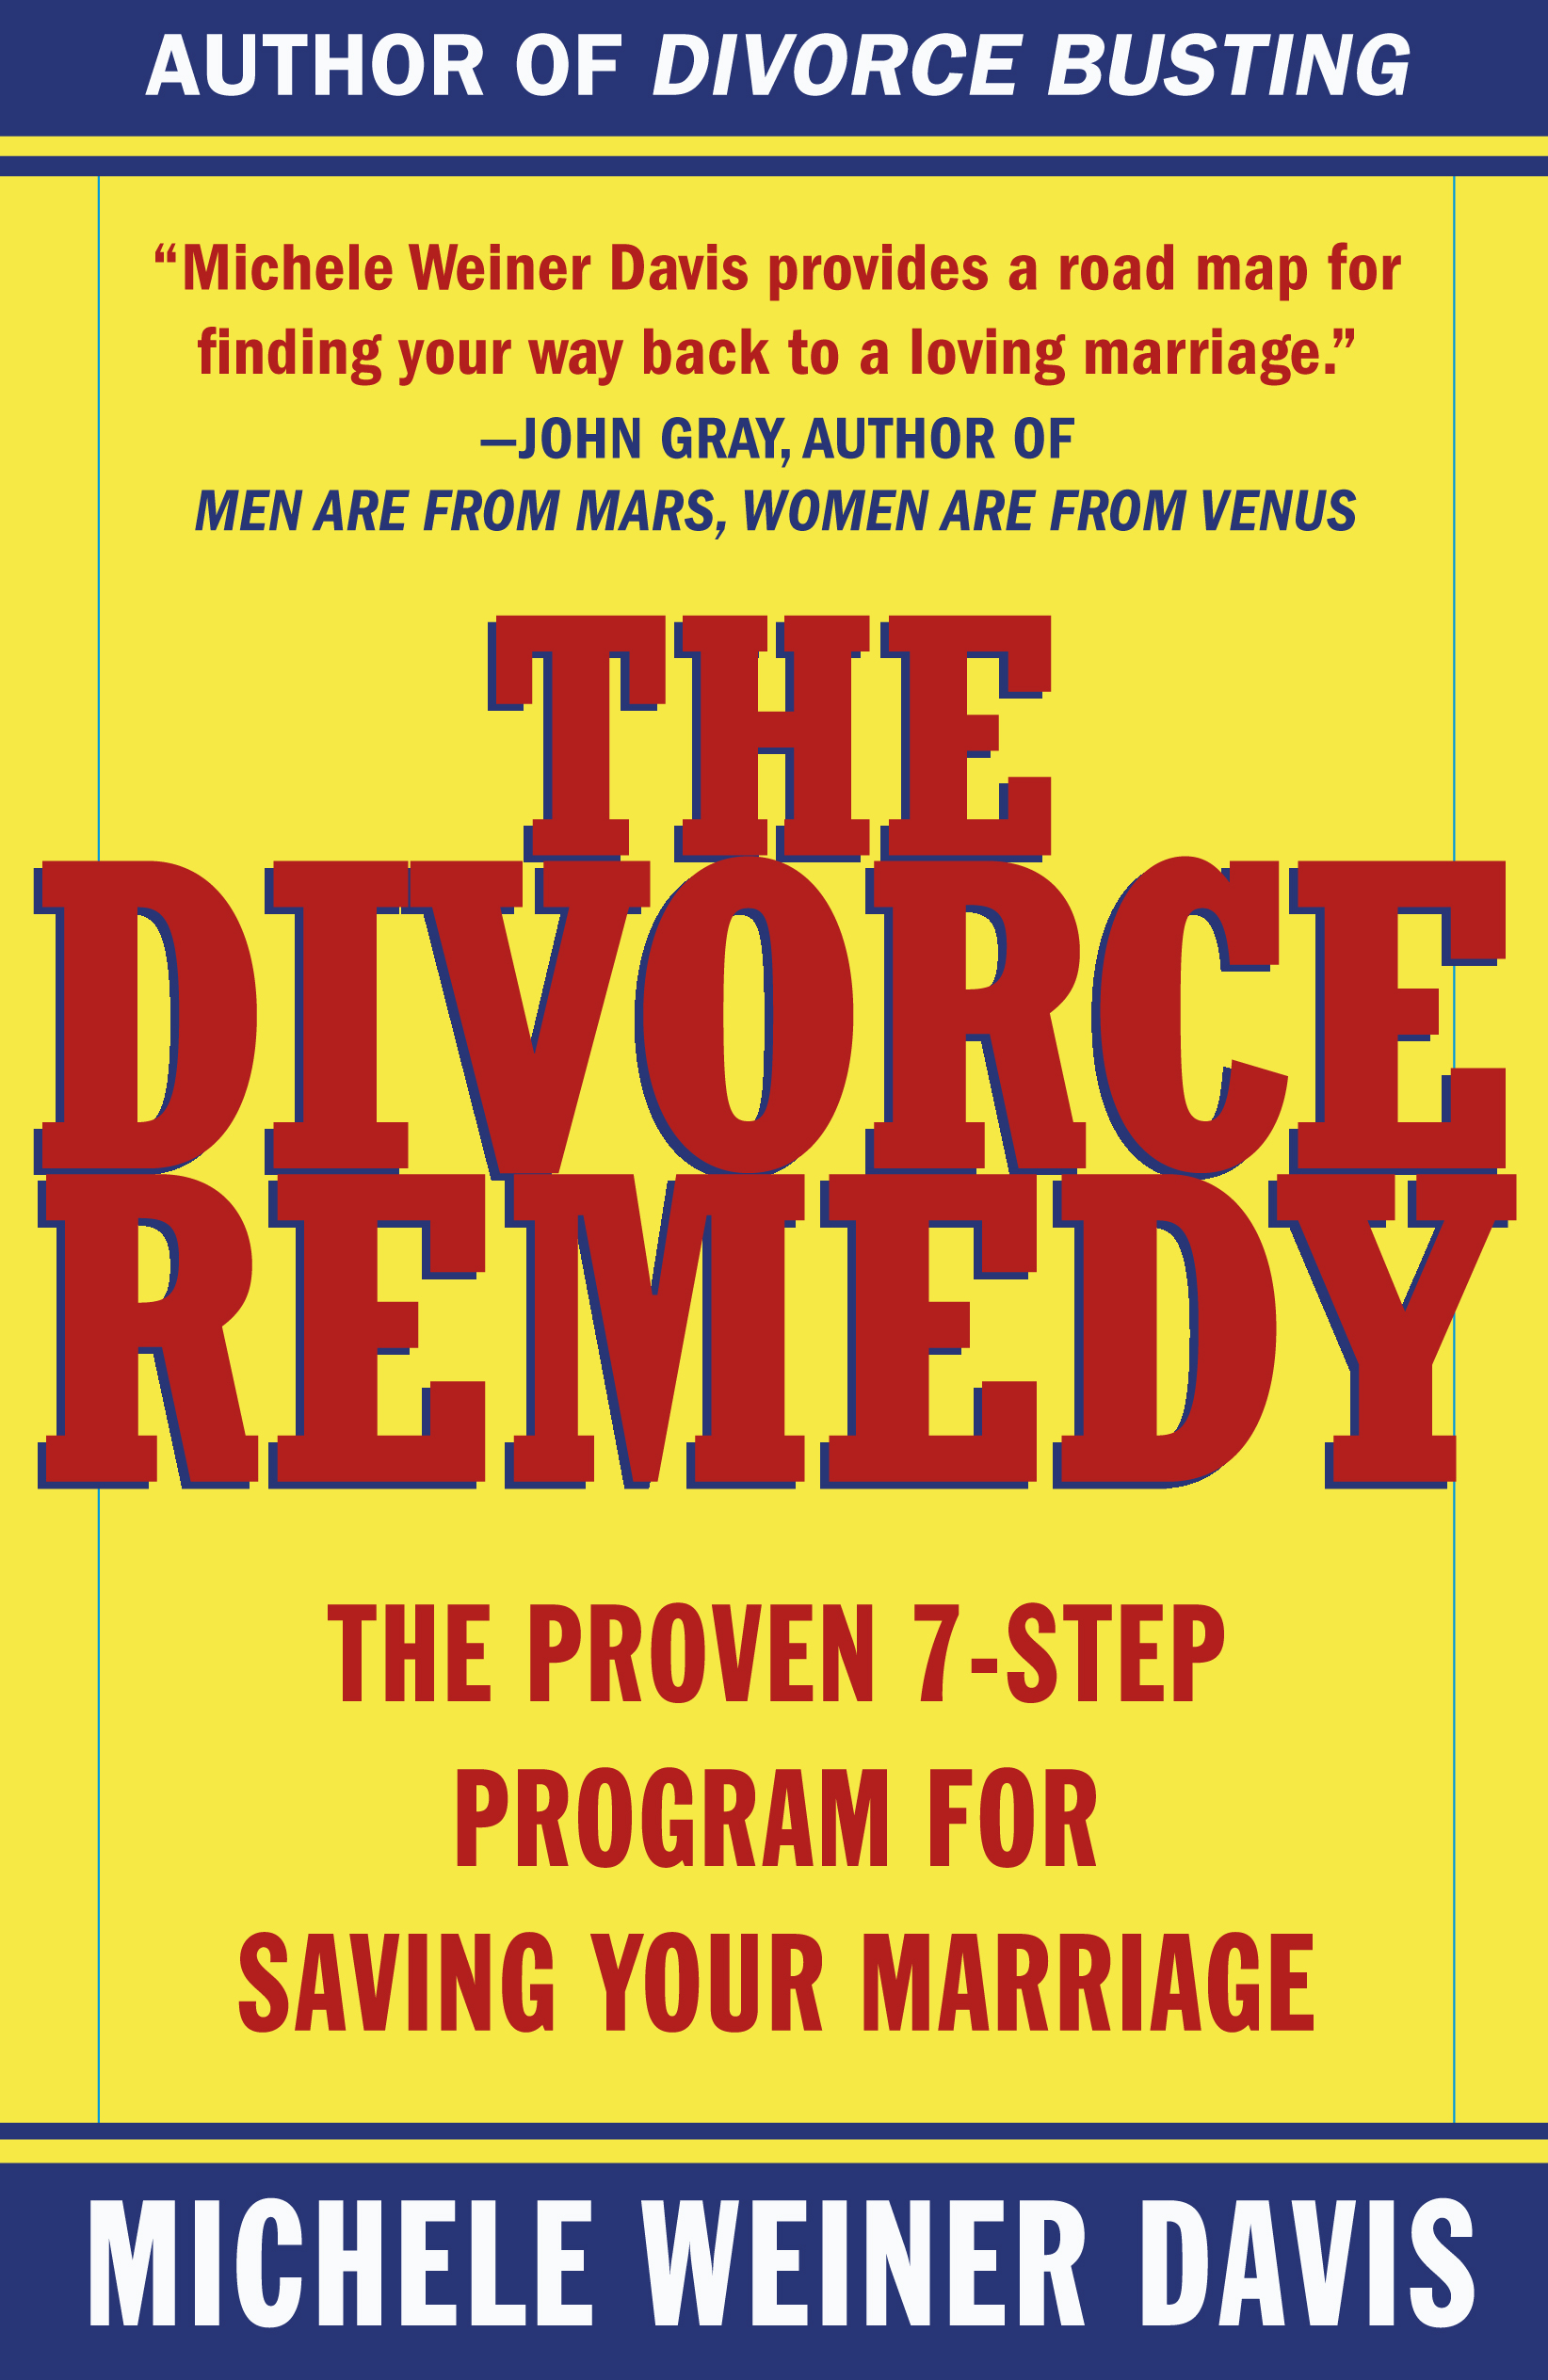 The divorce remedy book by michele weiner davis official book cover image jpg the divorce remedy fandeluxe Gallery